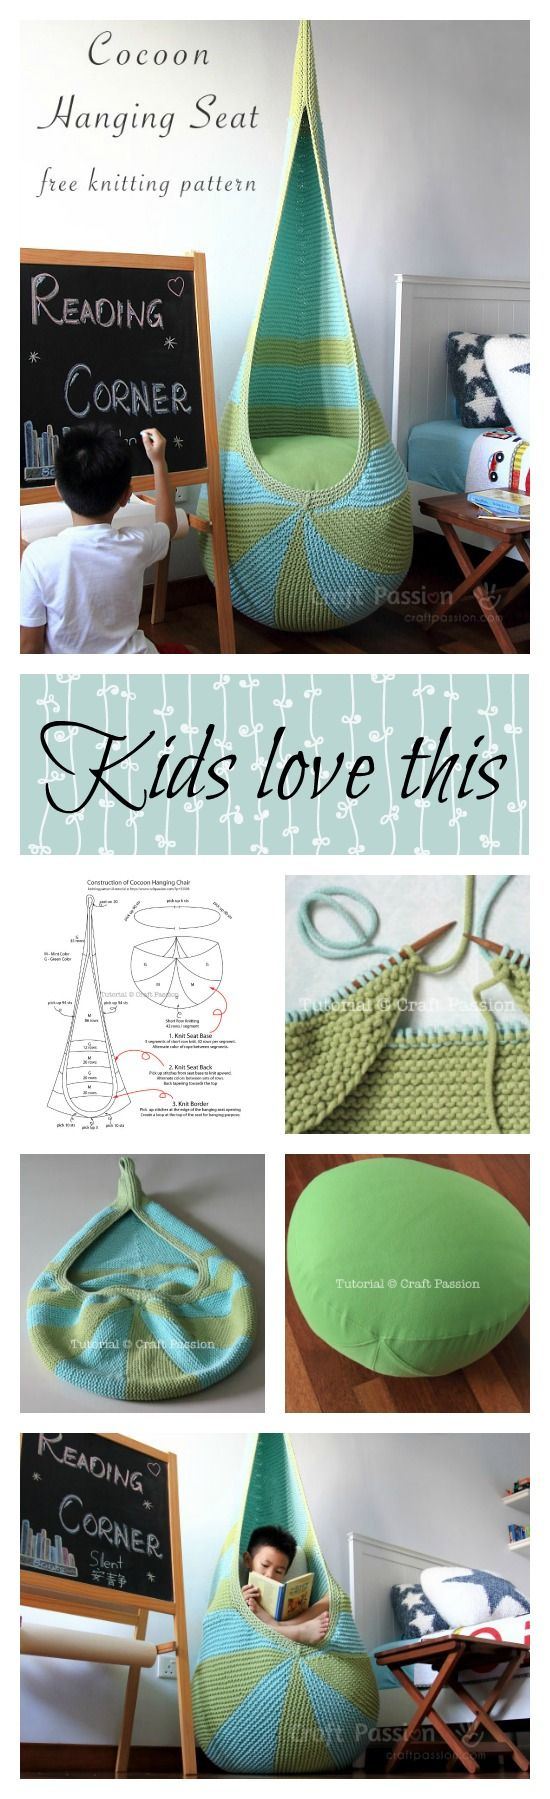 Free knitting pattern to DIY your own  cocoon hanging seat. Written pattern & instructions, tutorial photos to show the details. Include seat insert pattern.